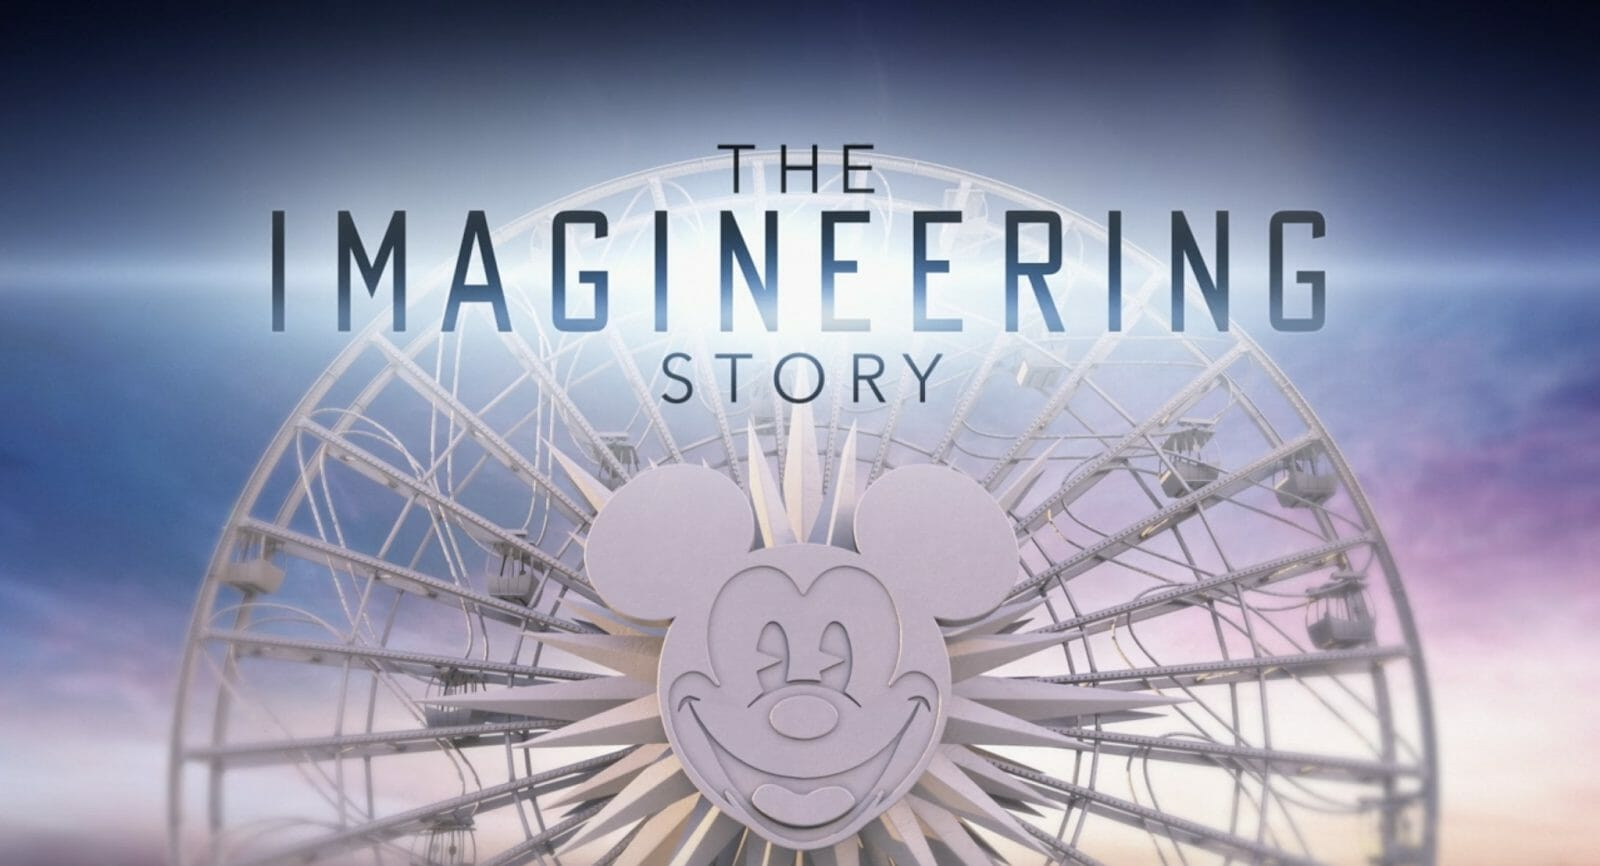 The Imagineering Story Receives an Emmy Nomination